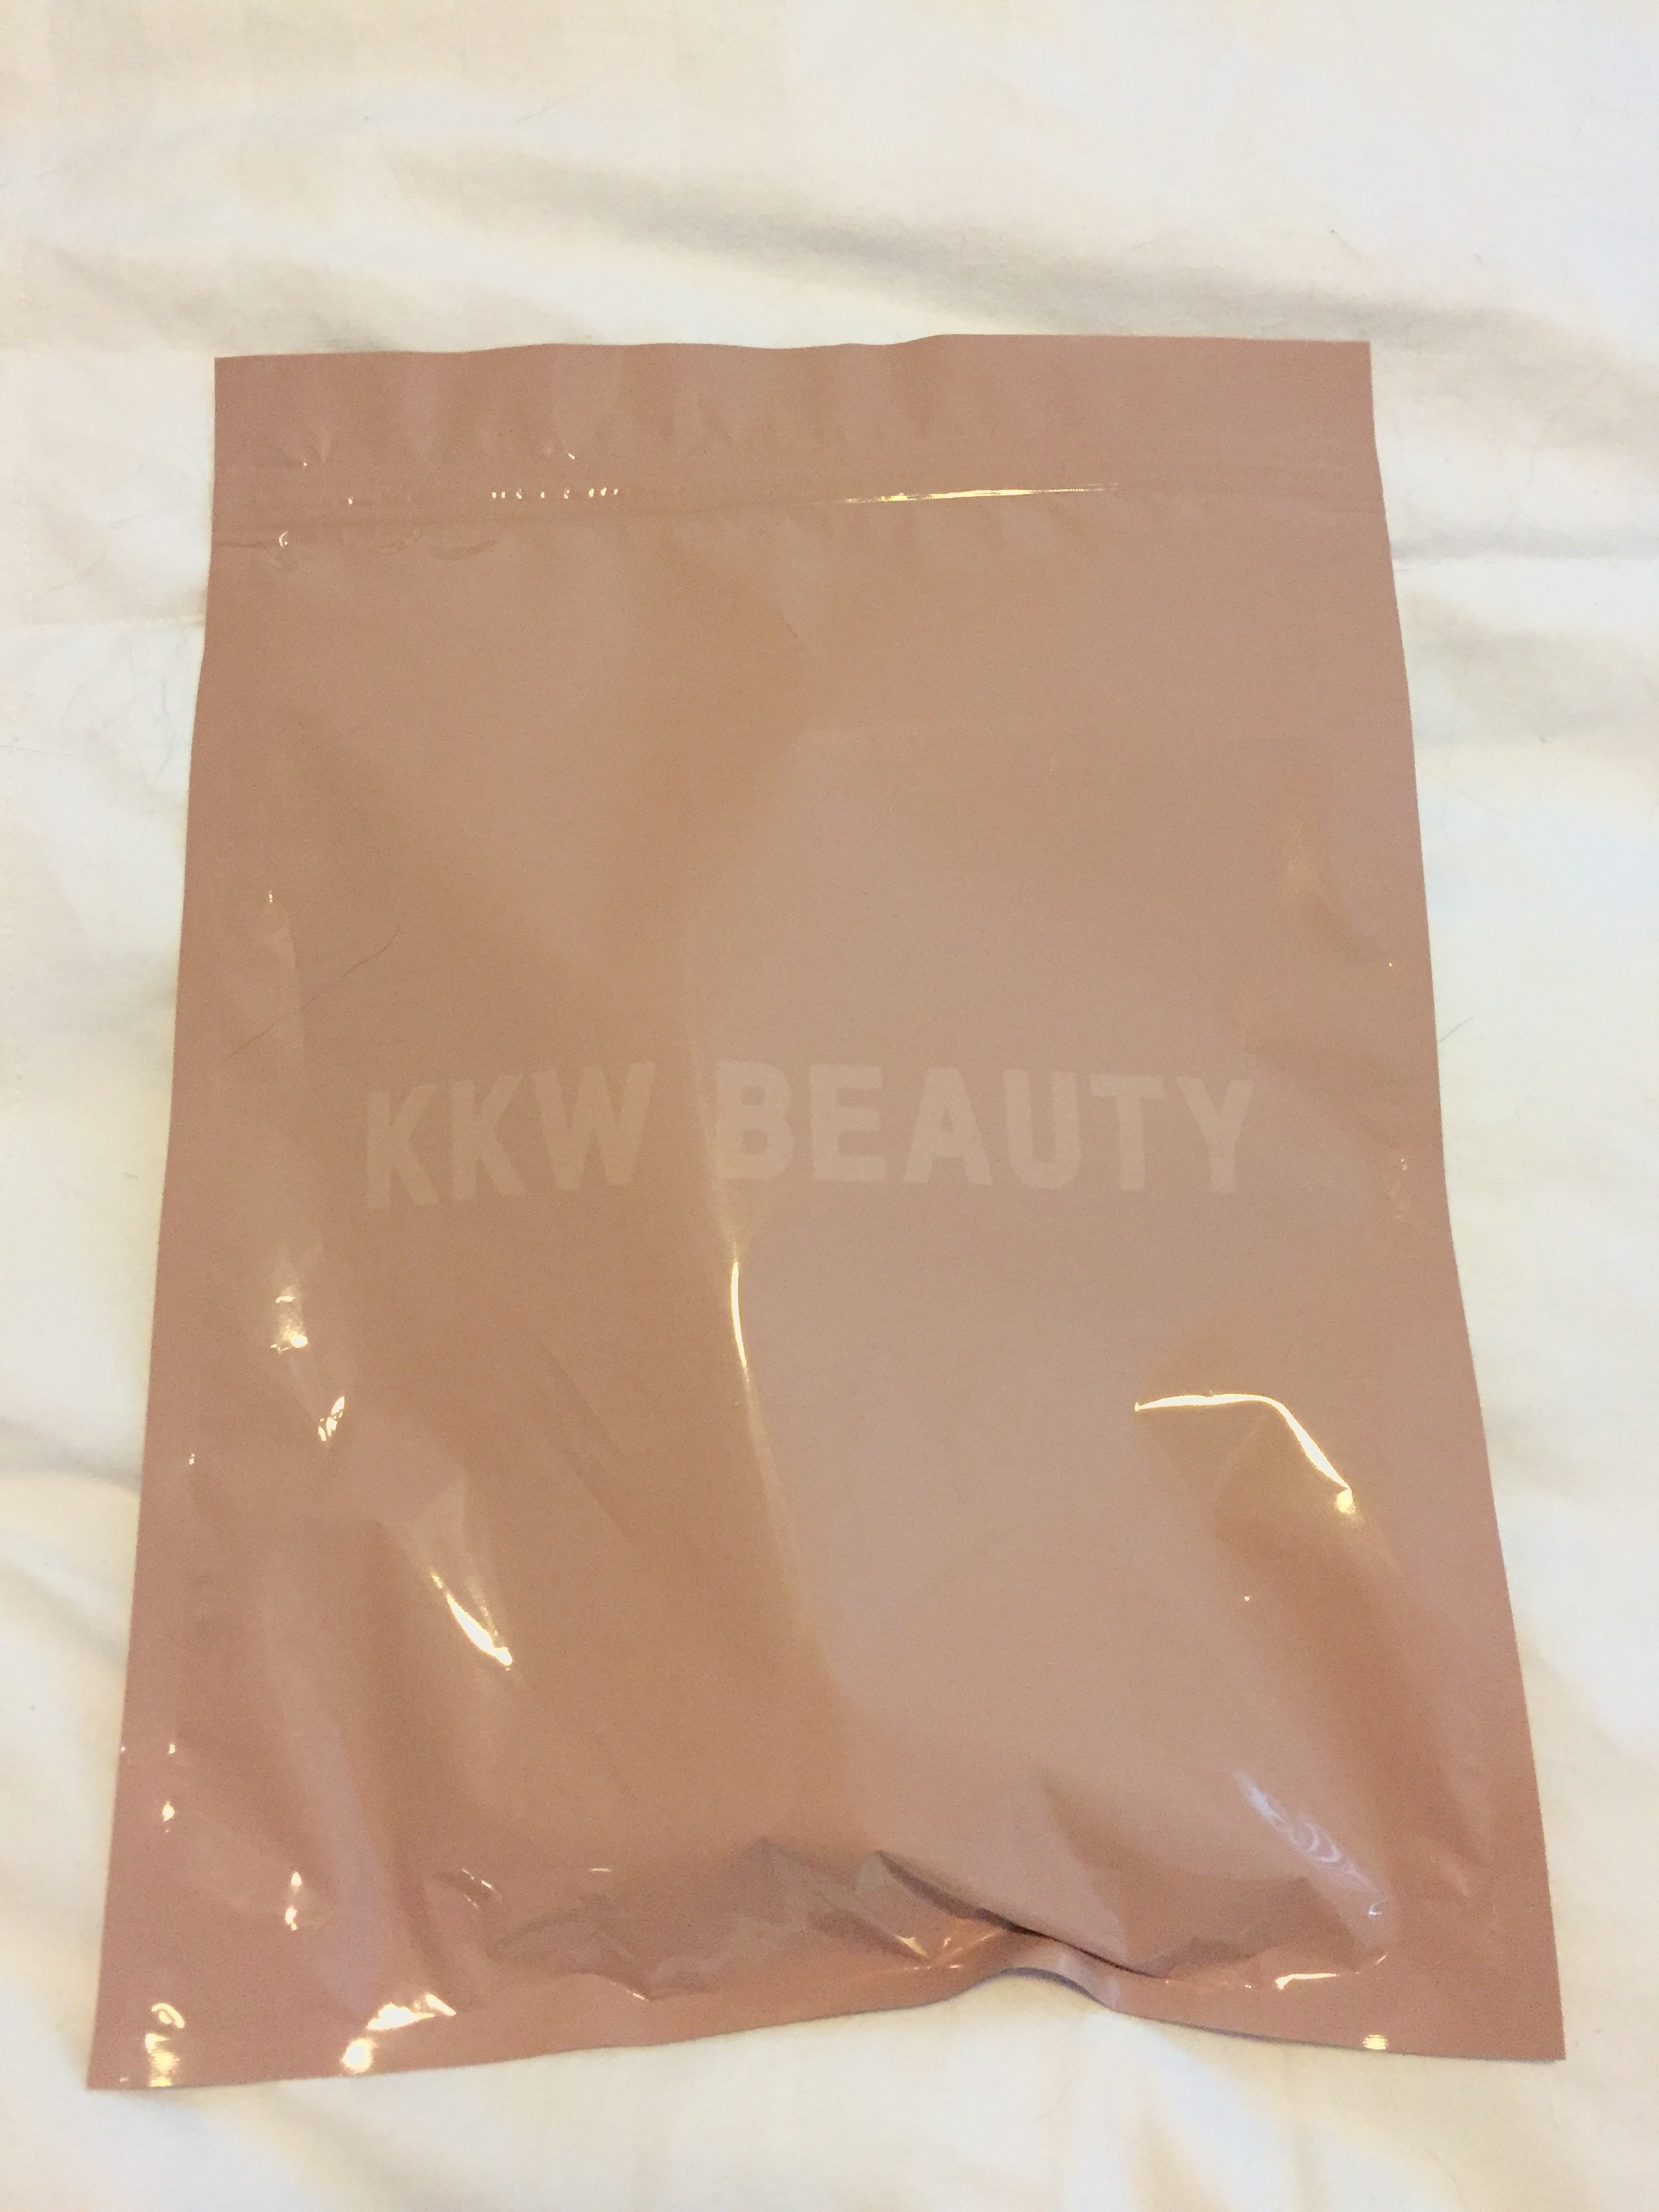 KKW Beauty Contour Kit